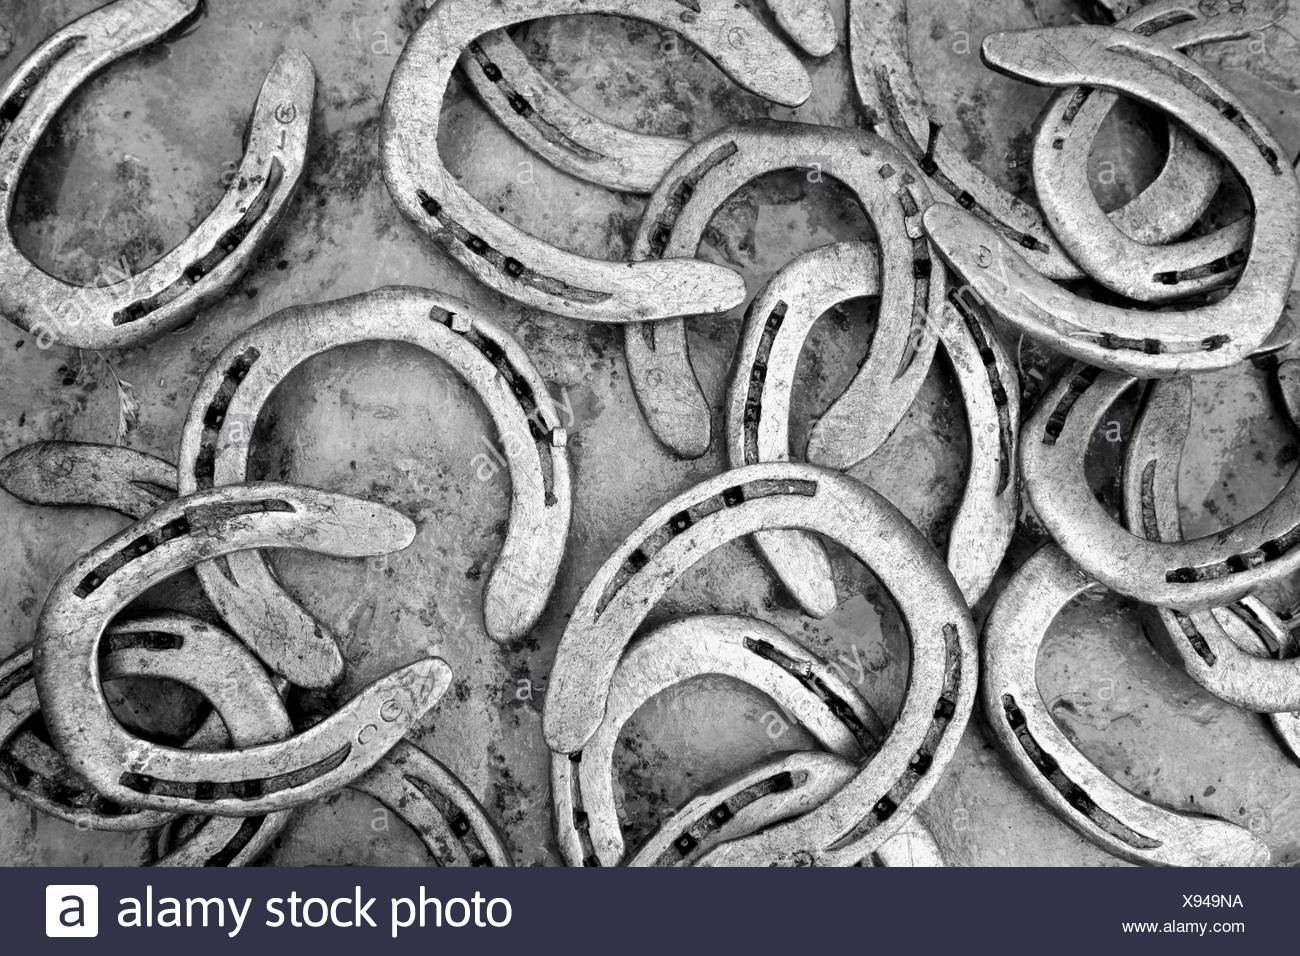 Horseshoe detail - Stock Image